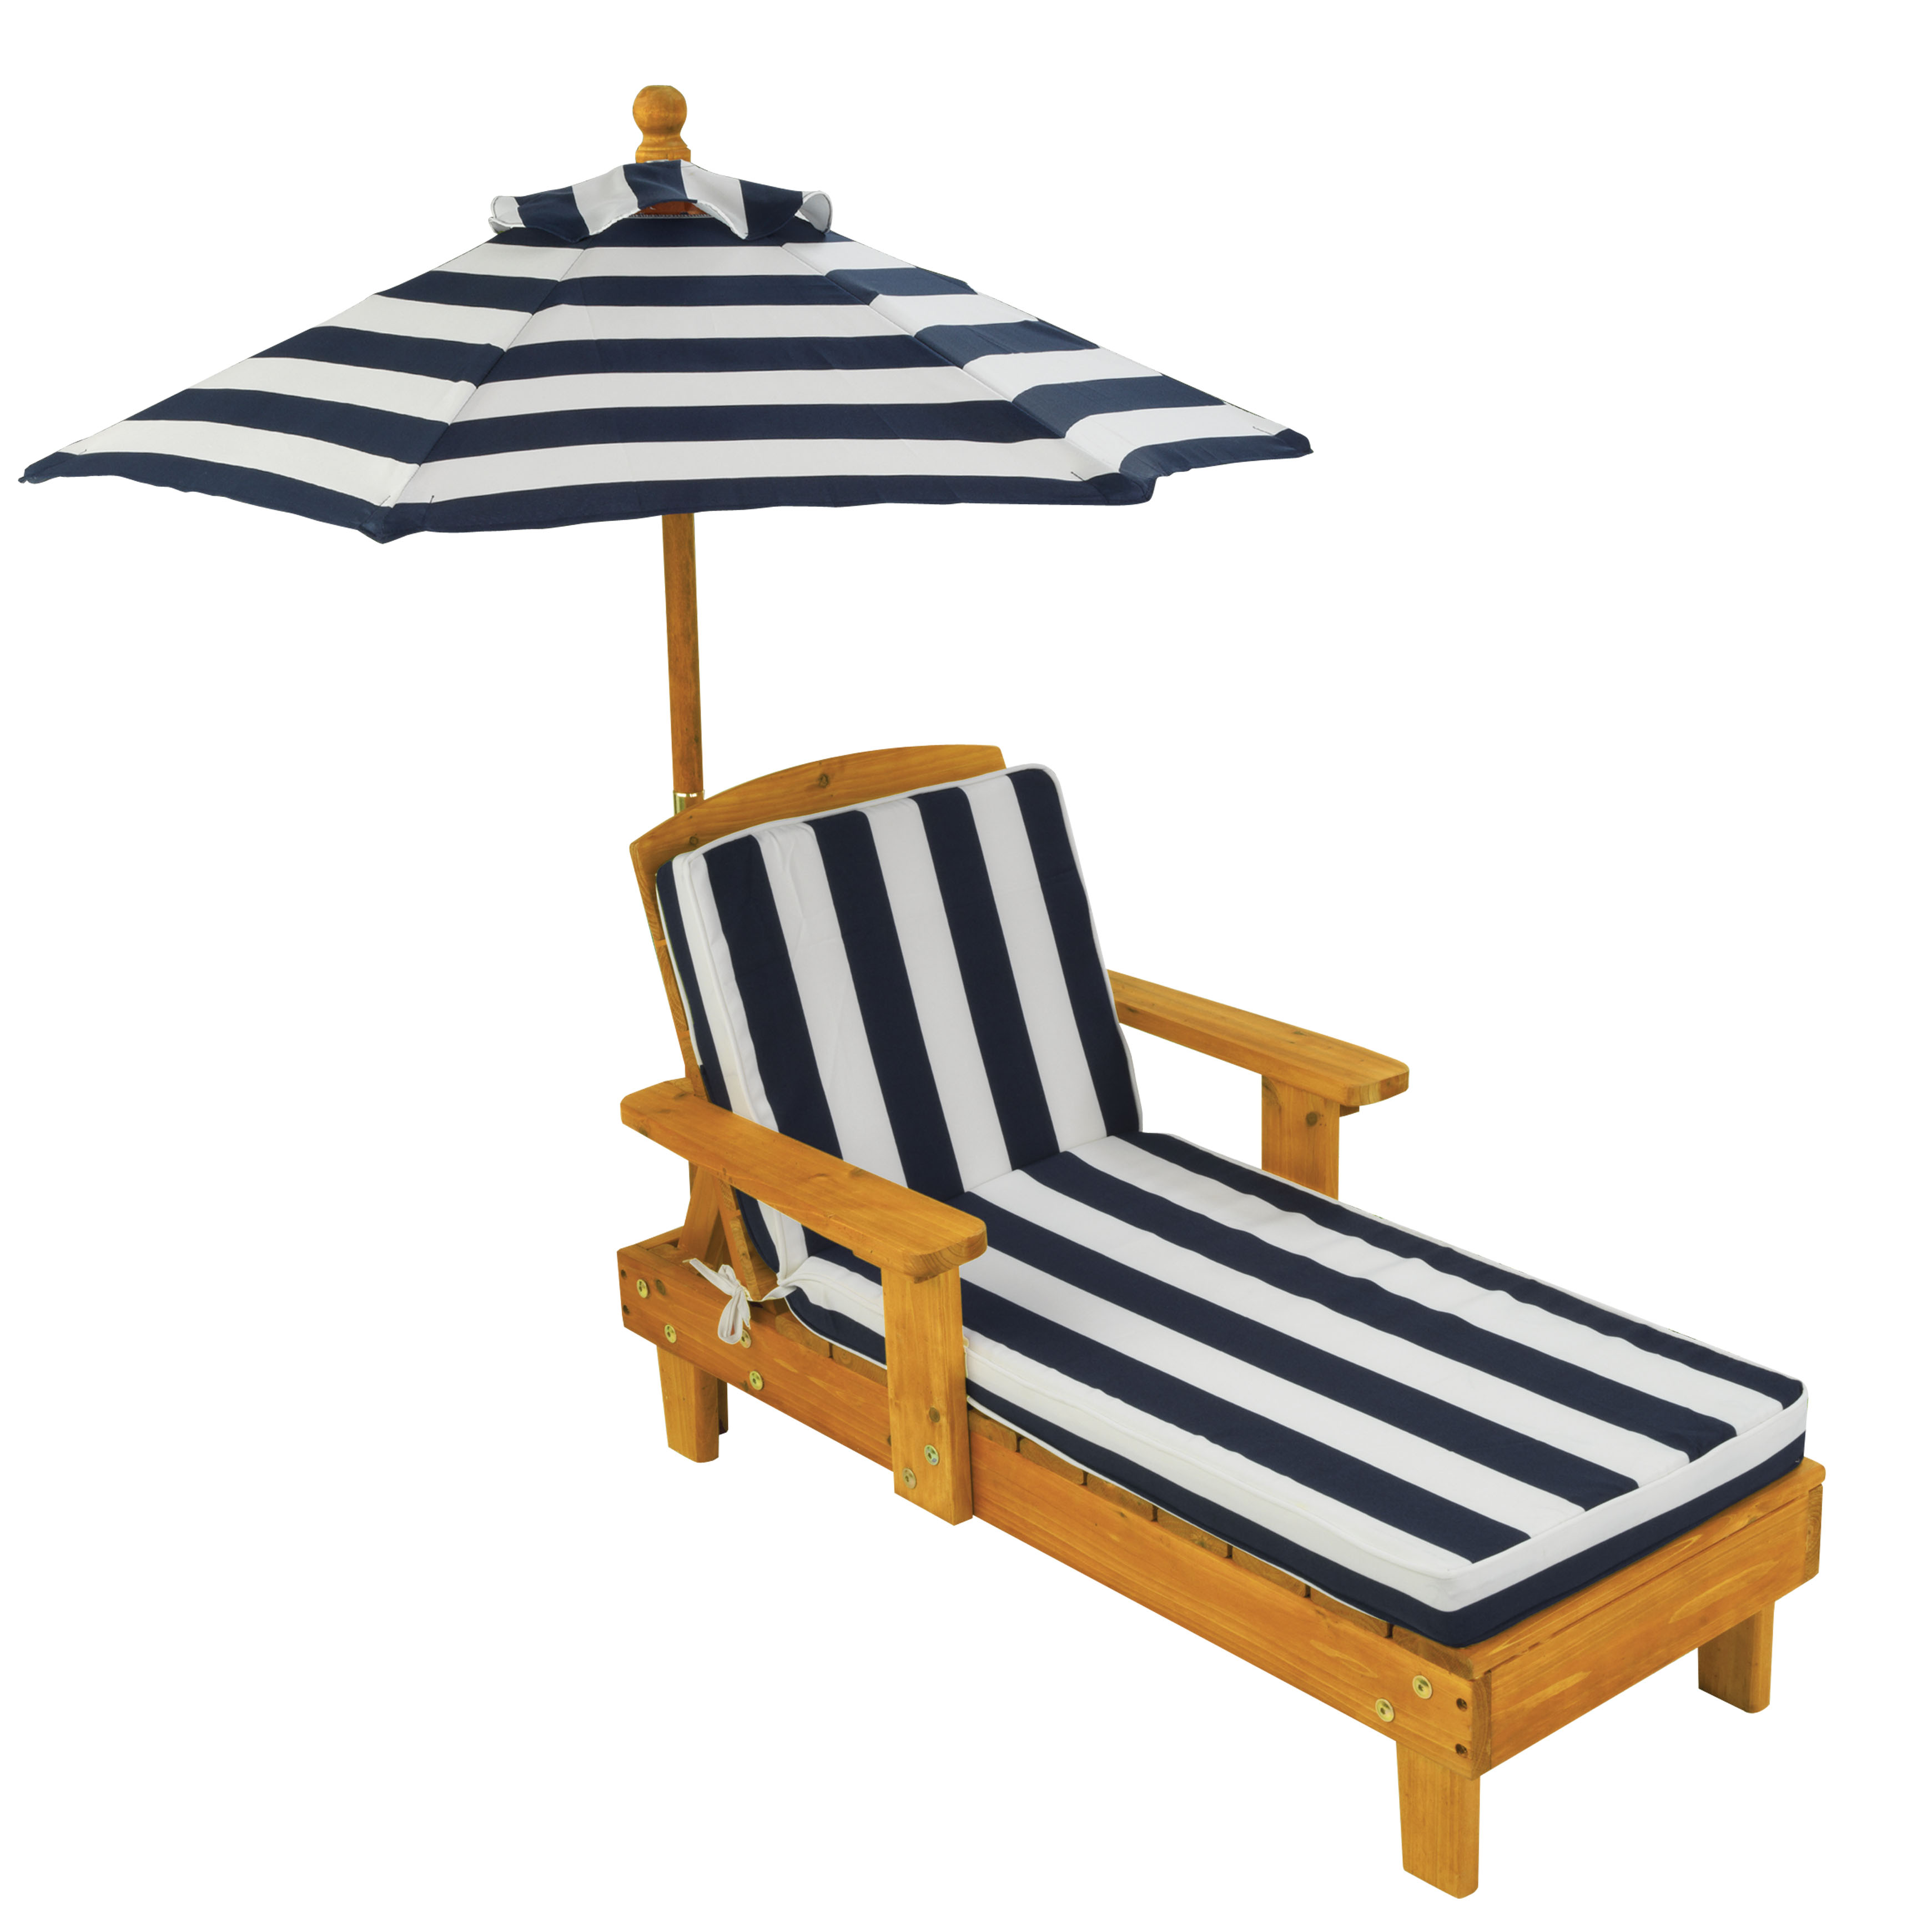 Kidkraft outdoor chaise lounge childrens chair with umbrella and cushion navy